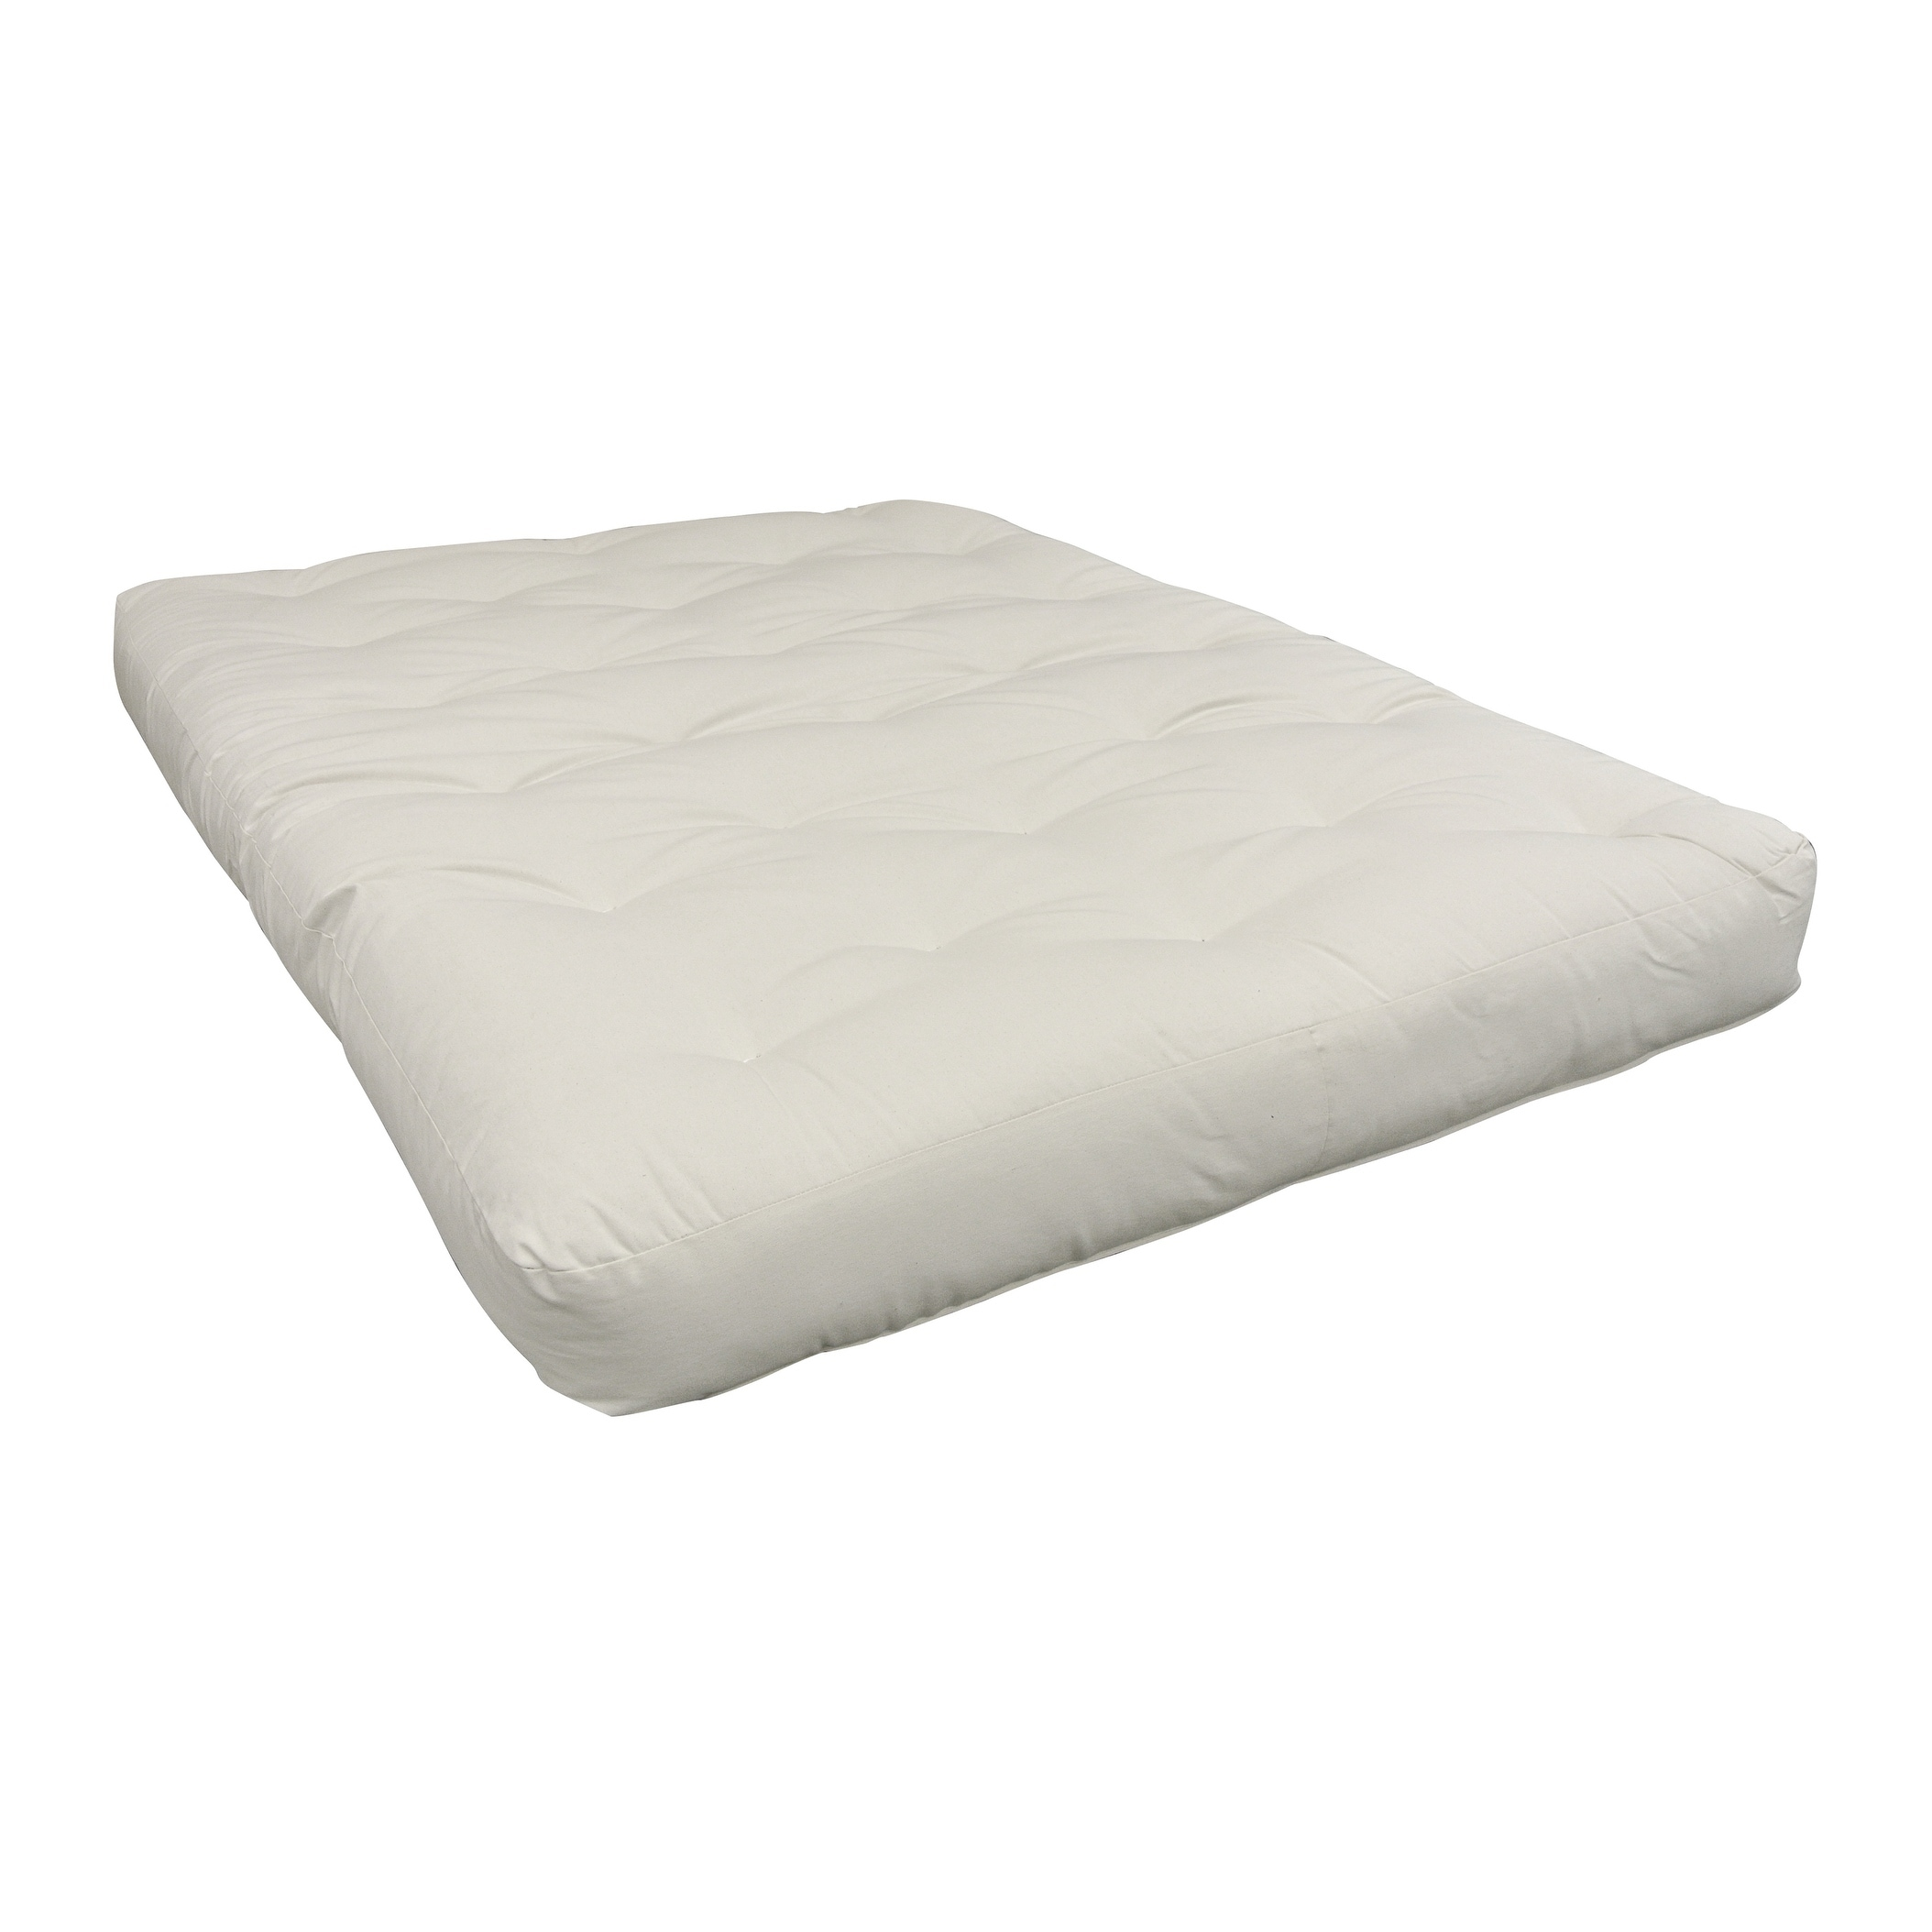 All Cotton Natural 8 inch Twin Futon Mattress Free Shipping